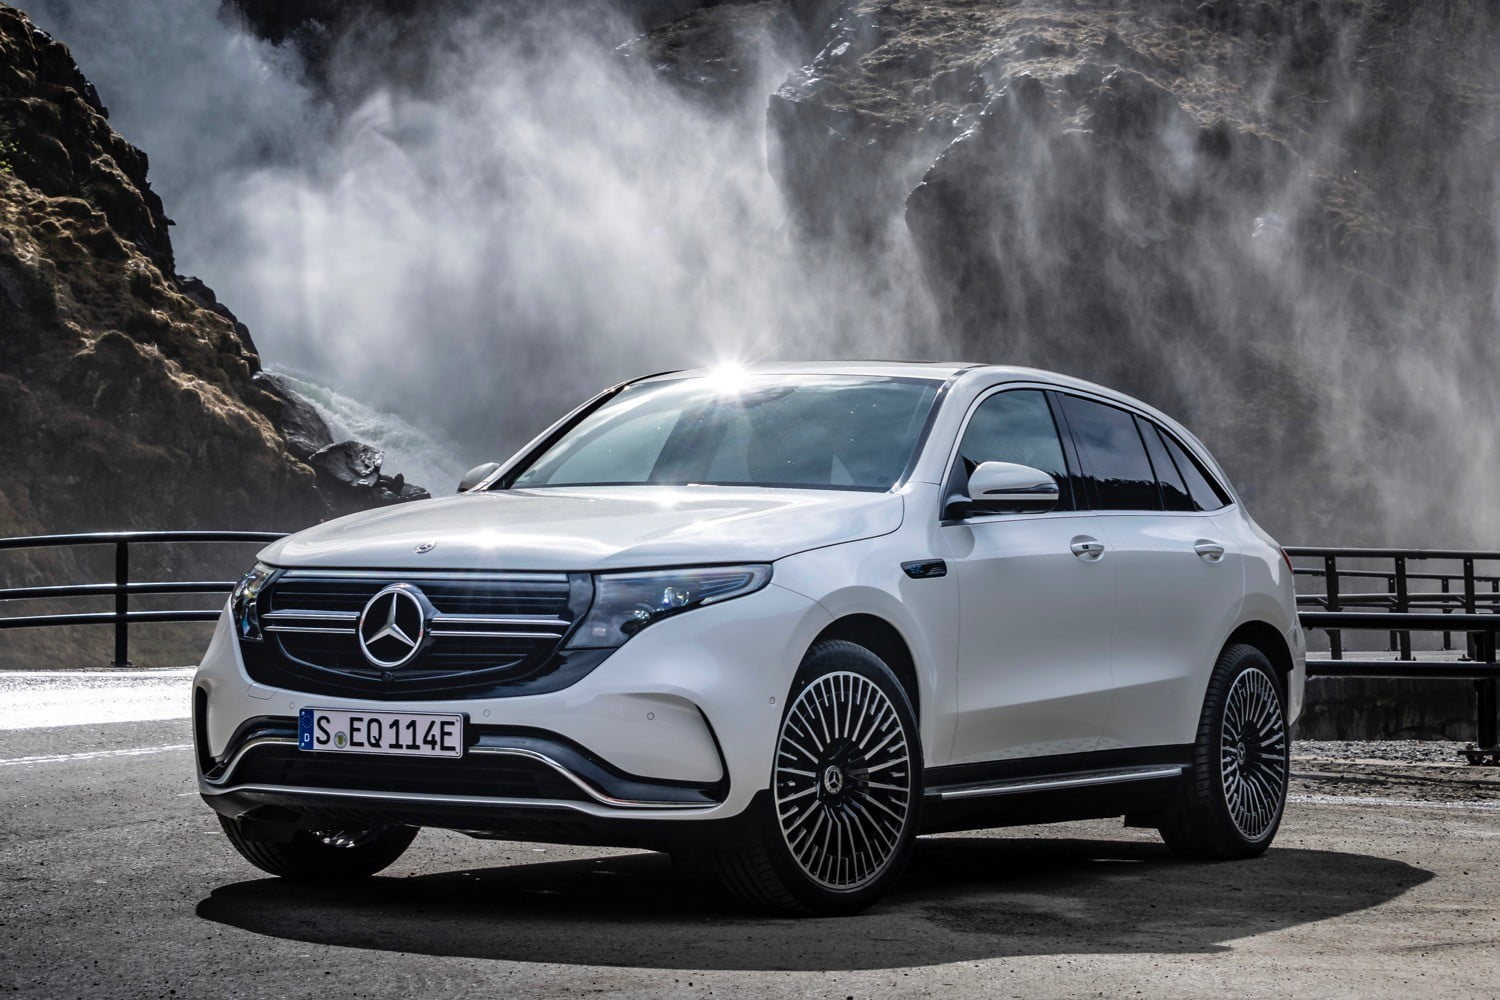 U.S. customers will have to wait another year for Mercedes' electric EQC